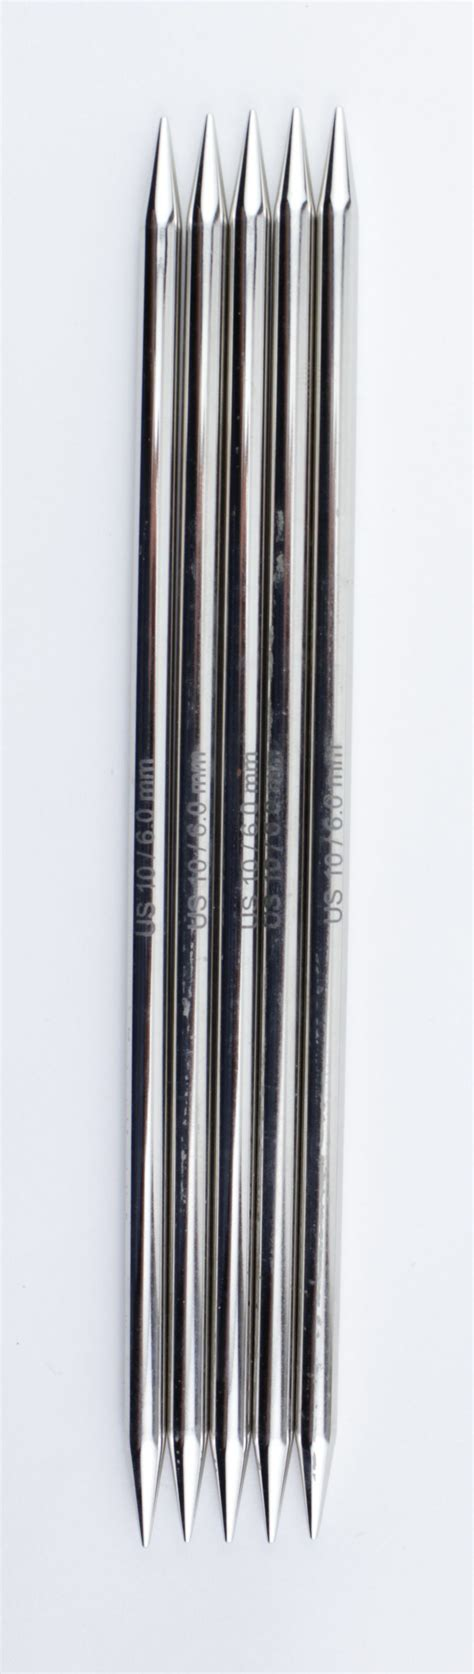 size 10 knitting needles platina 8 quot point size 10 knitting needles by